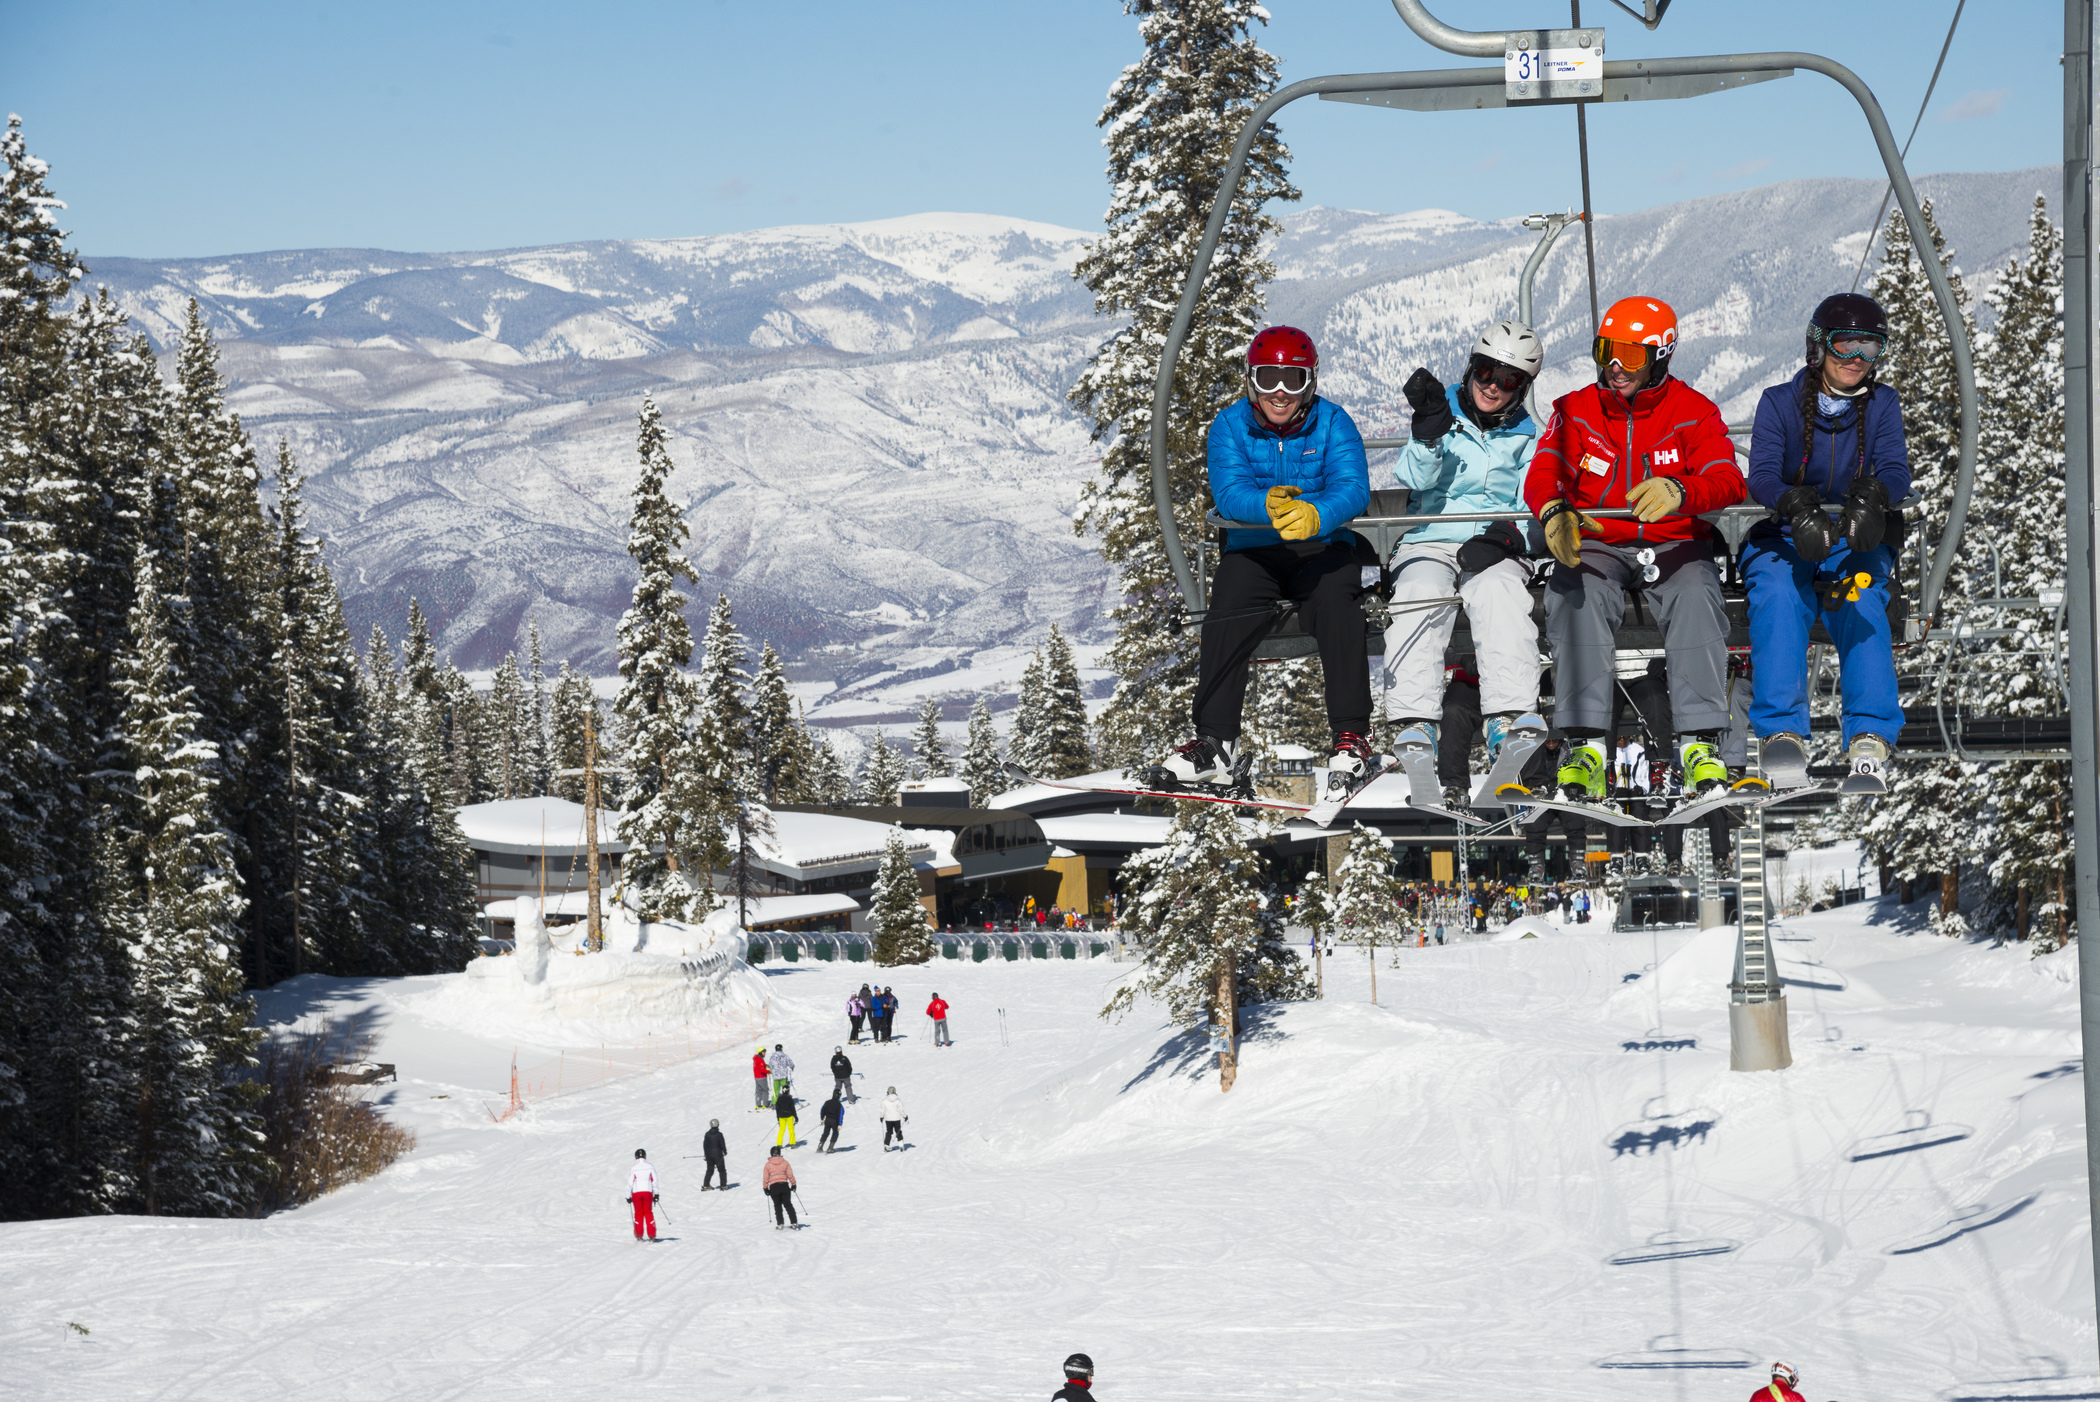 accident chairlift magazine scary flying outdoors lift everywhere chair with watch gripped skiers